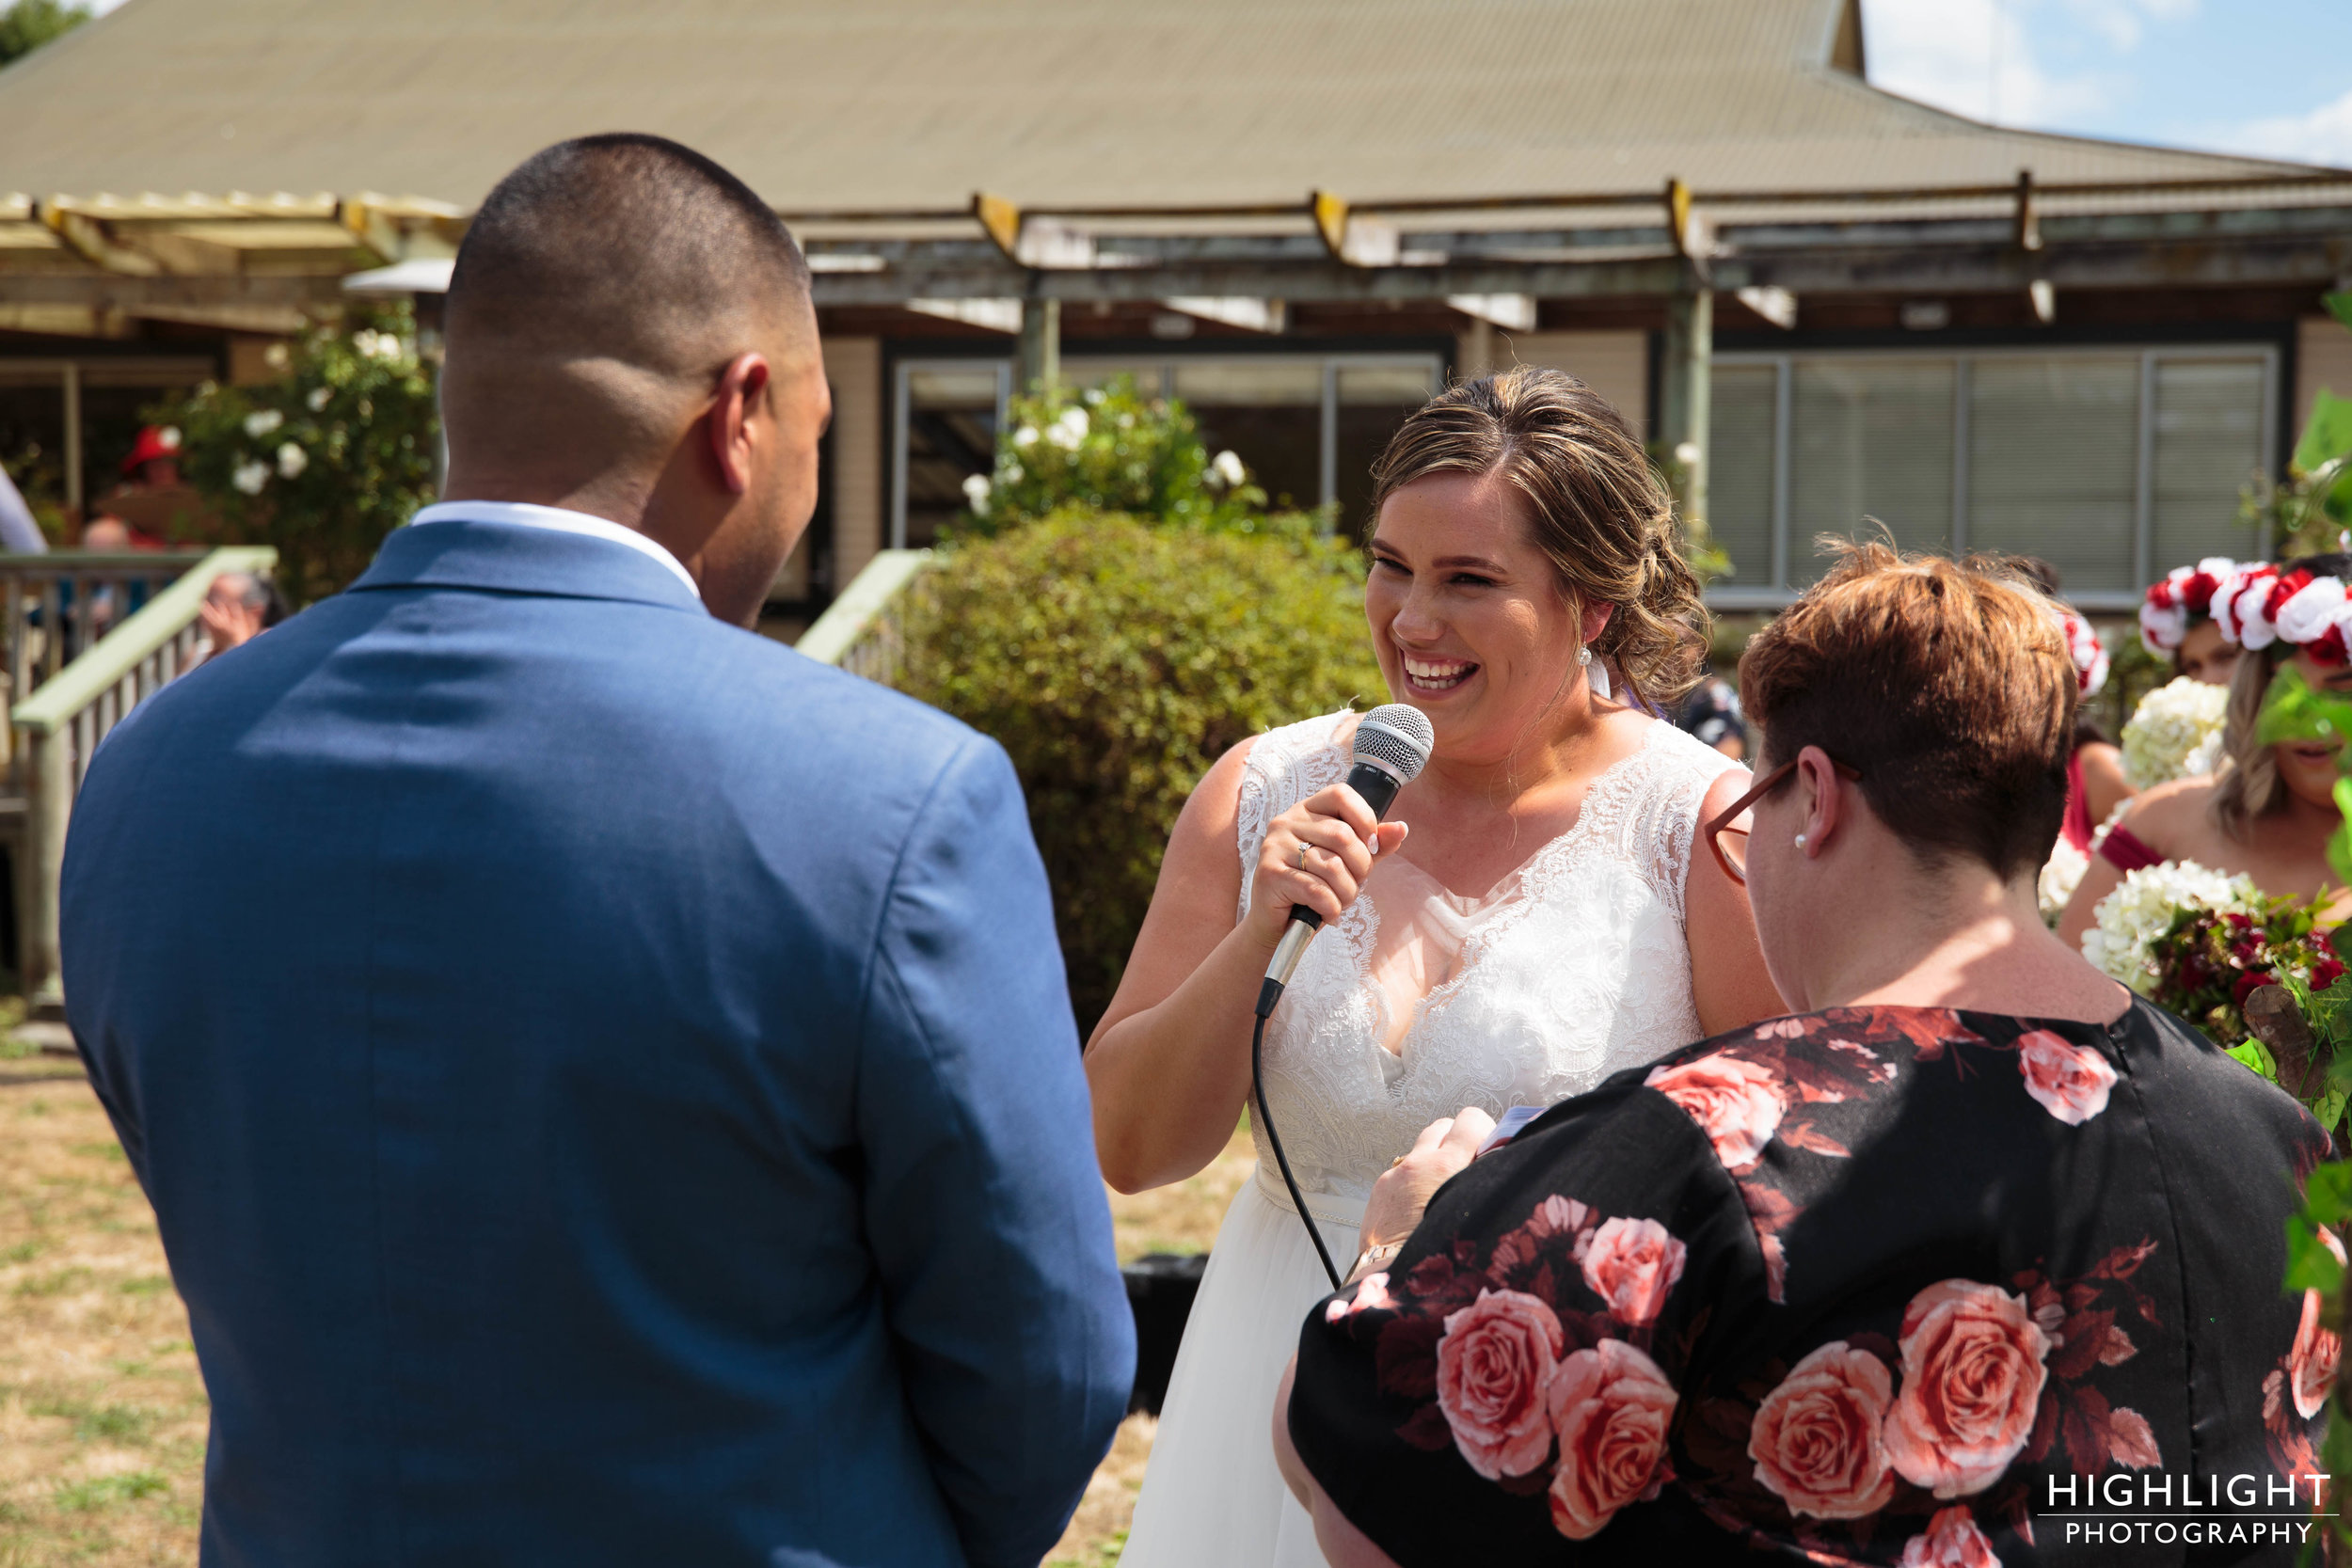 highlight-wedding-photography-new-zealand-palmerston-north-bv-63.jpg